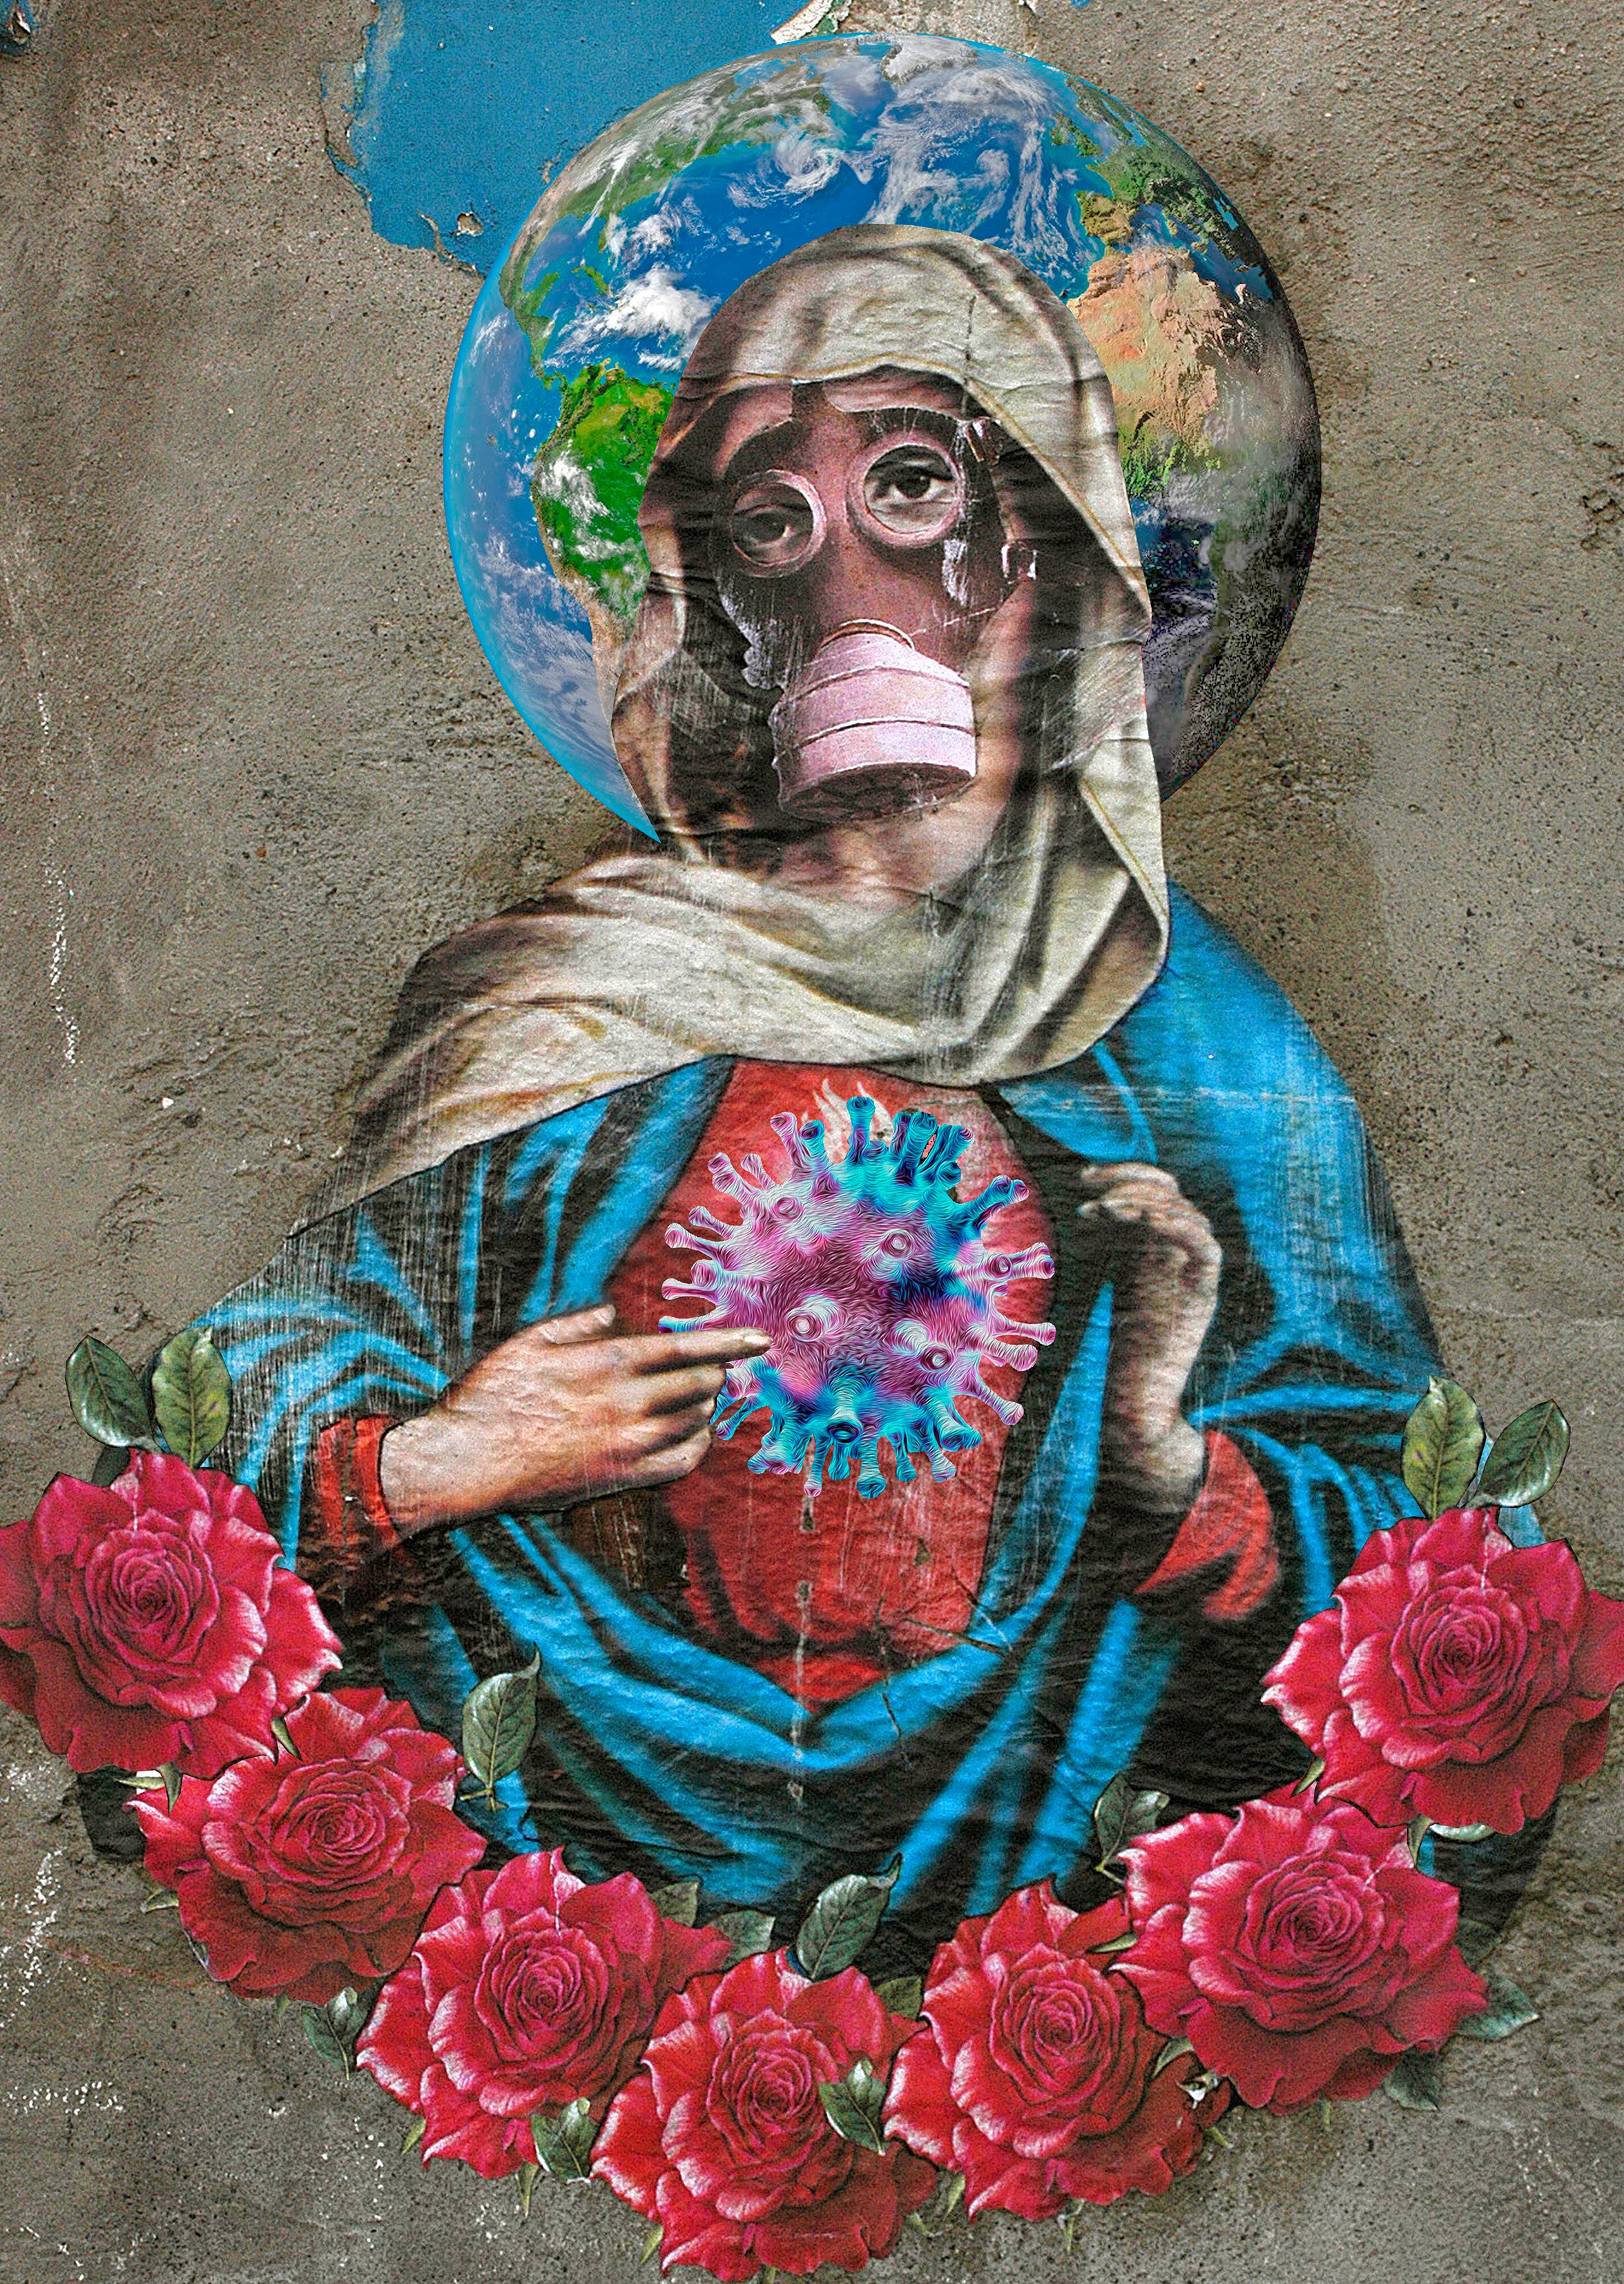 Coronavirus: How Artists in the Spanish-Speaking World Turn to Religious Imagery to Help Cope in a Crisis